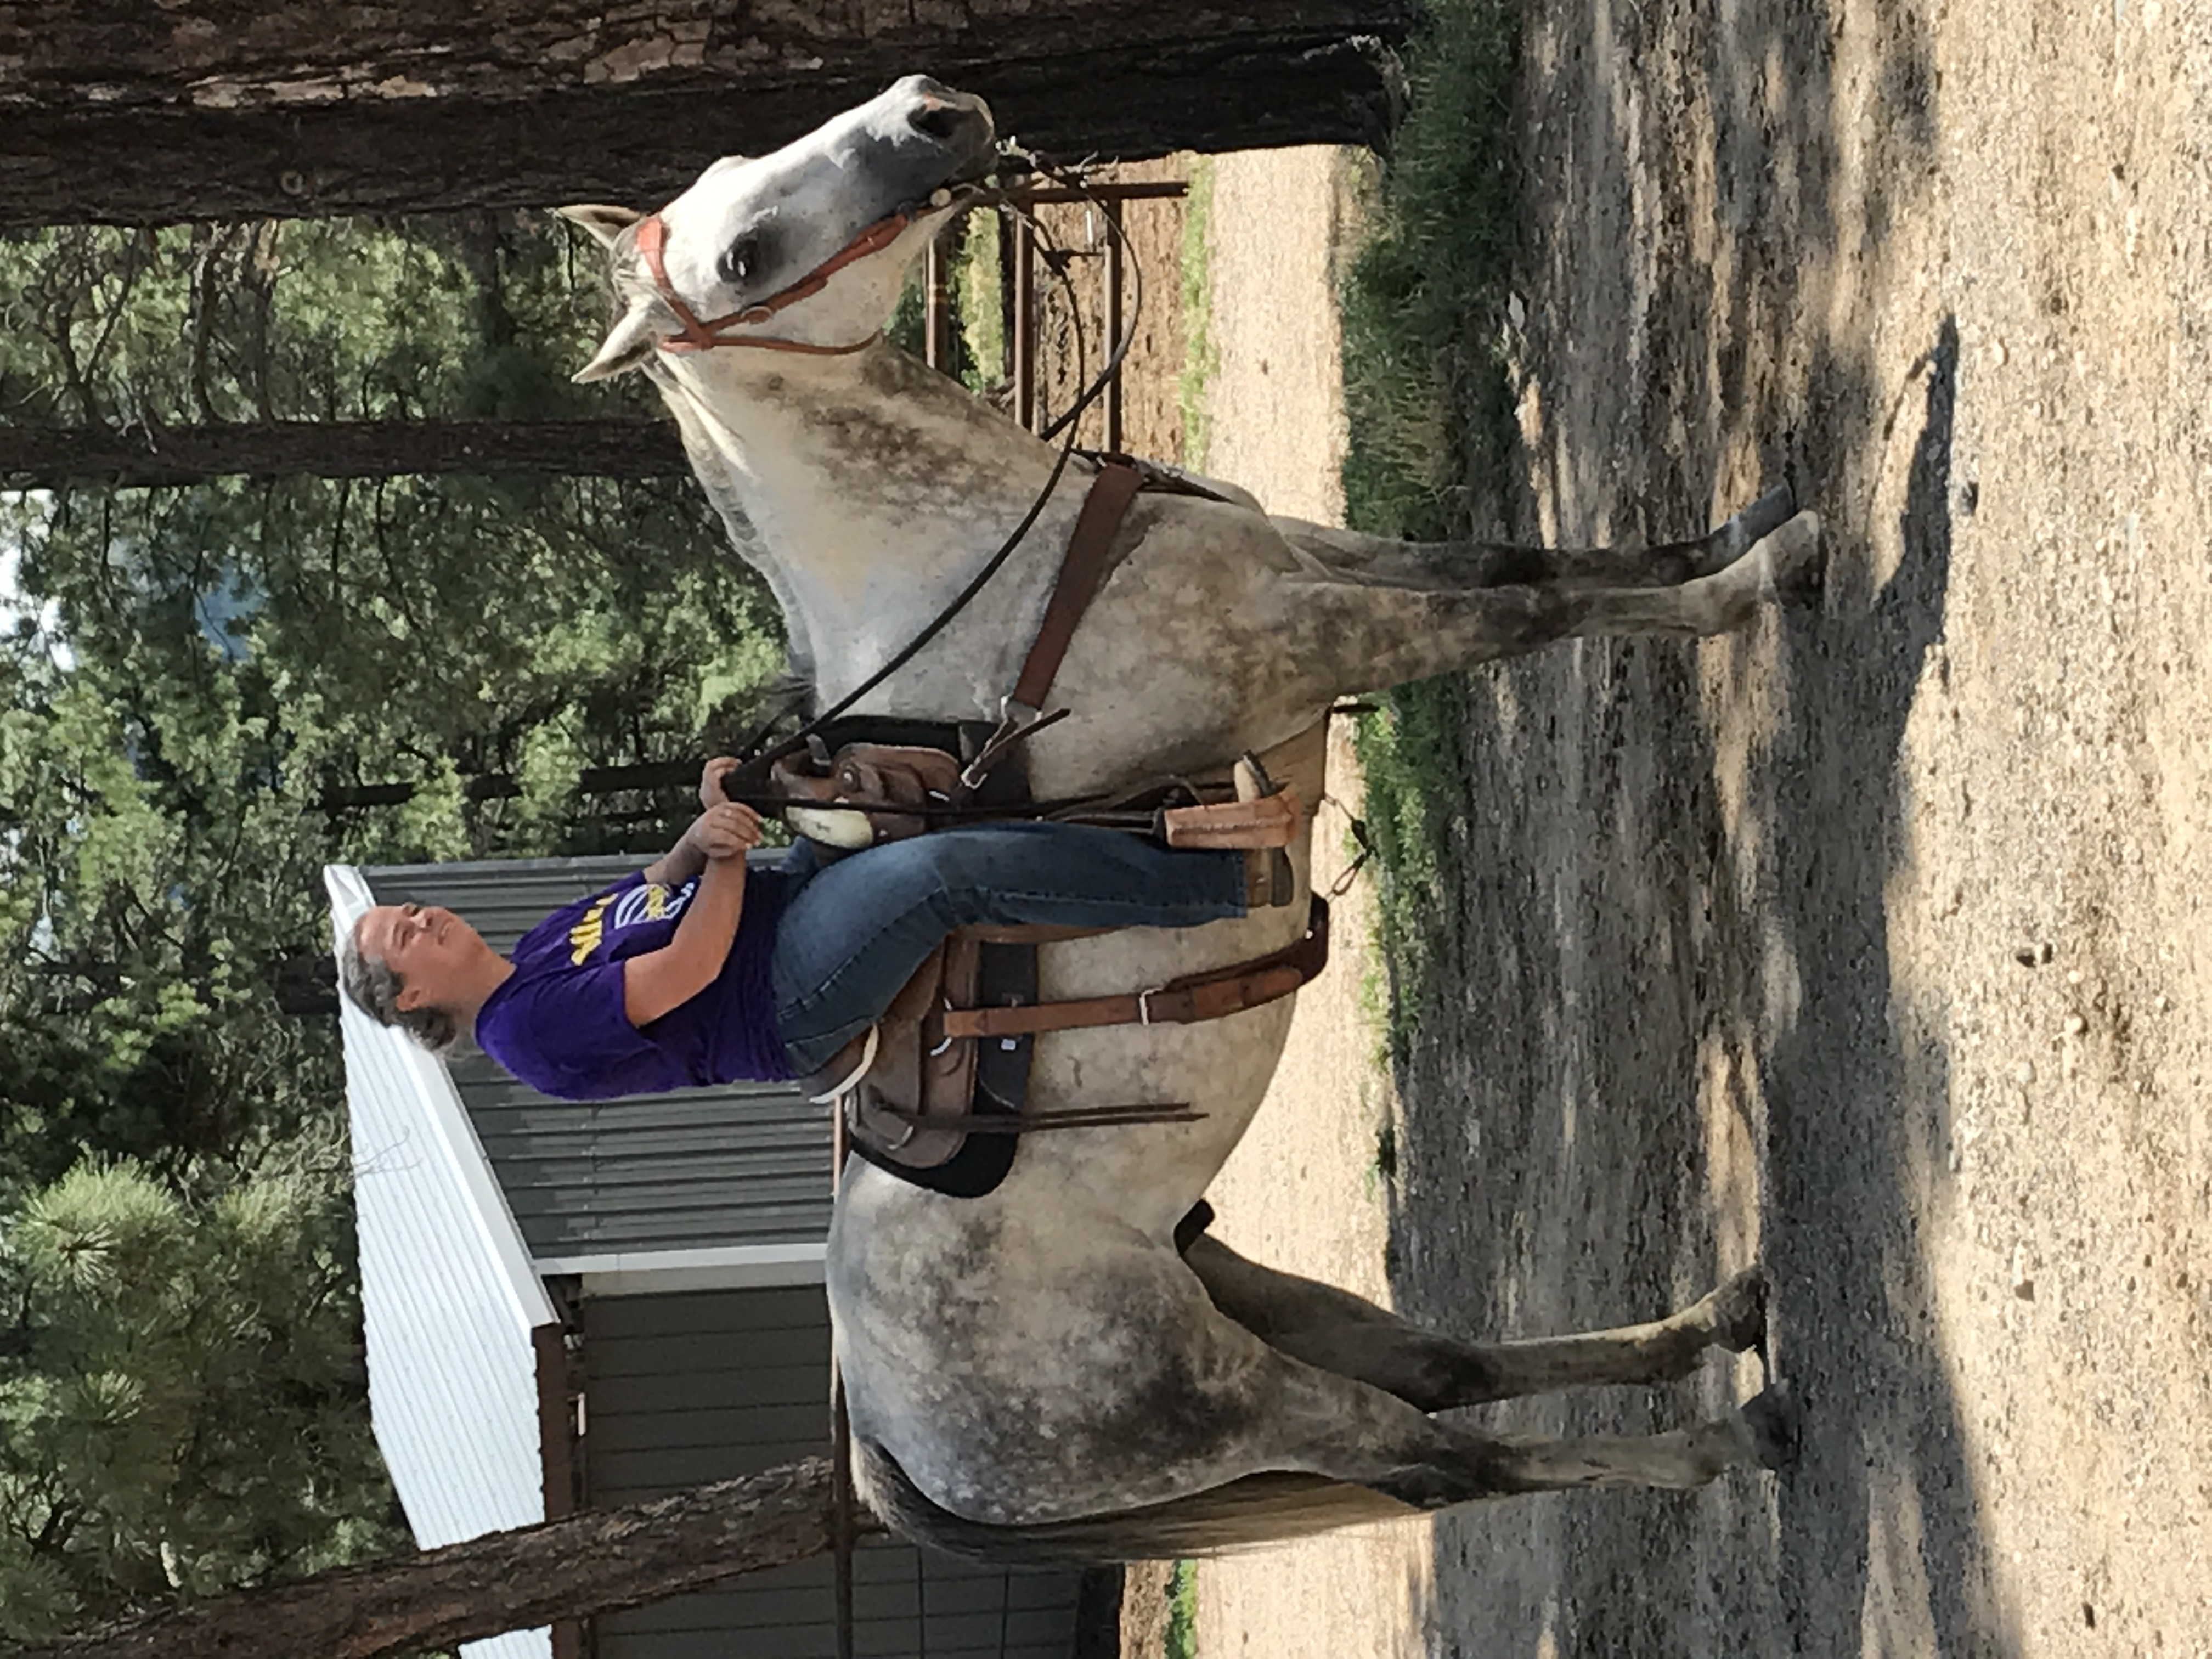 owner kelly gabbard on horse